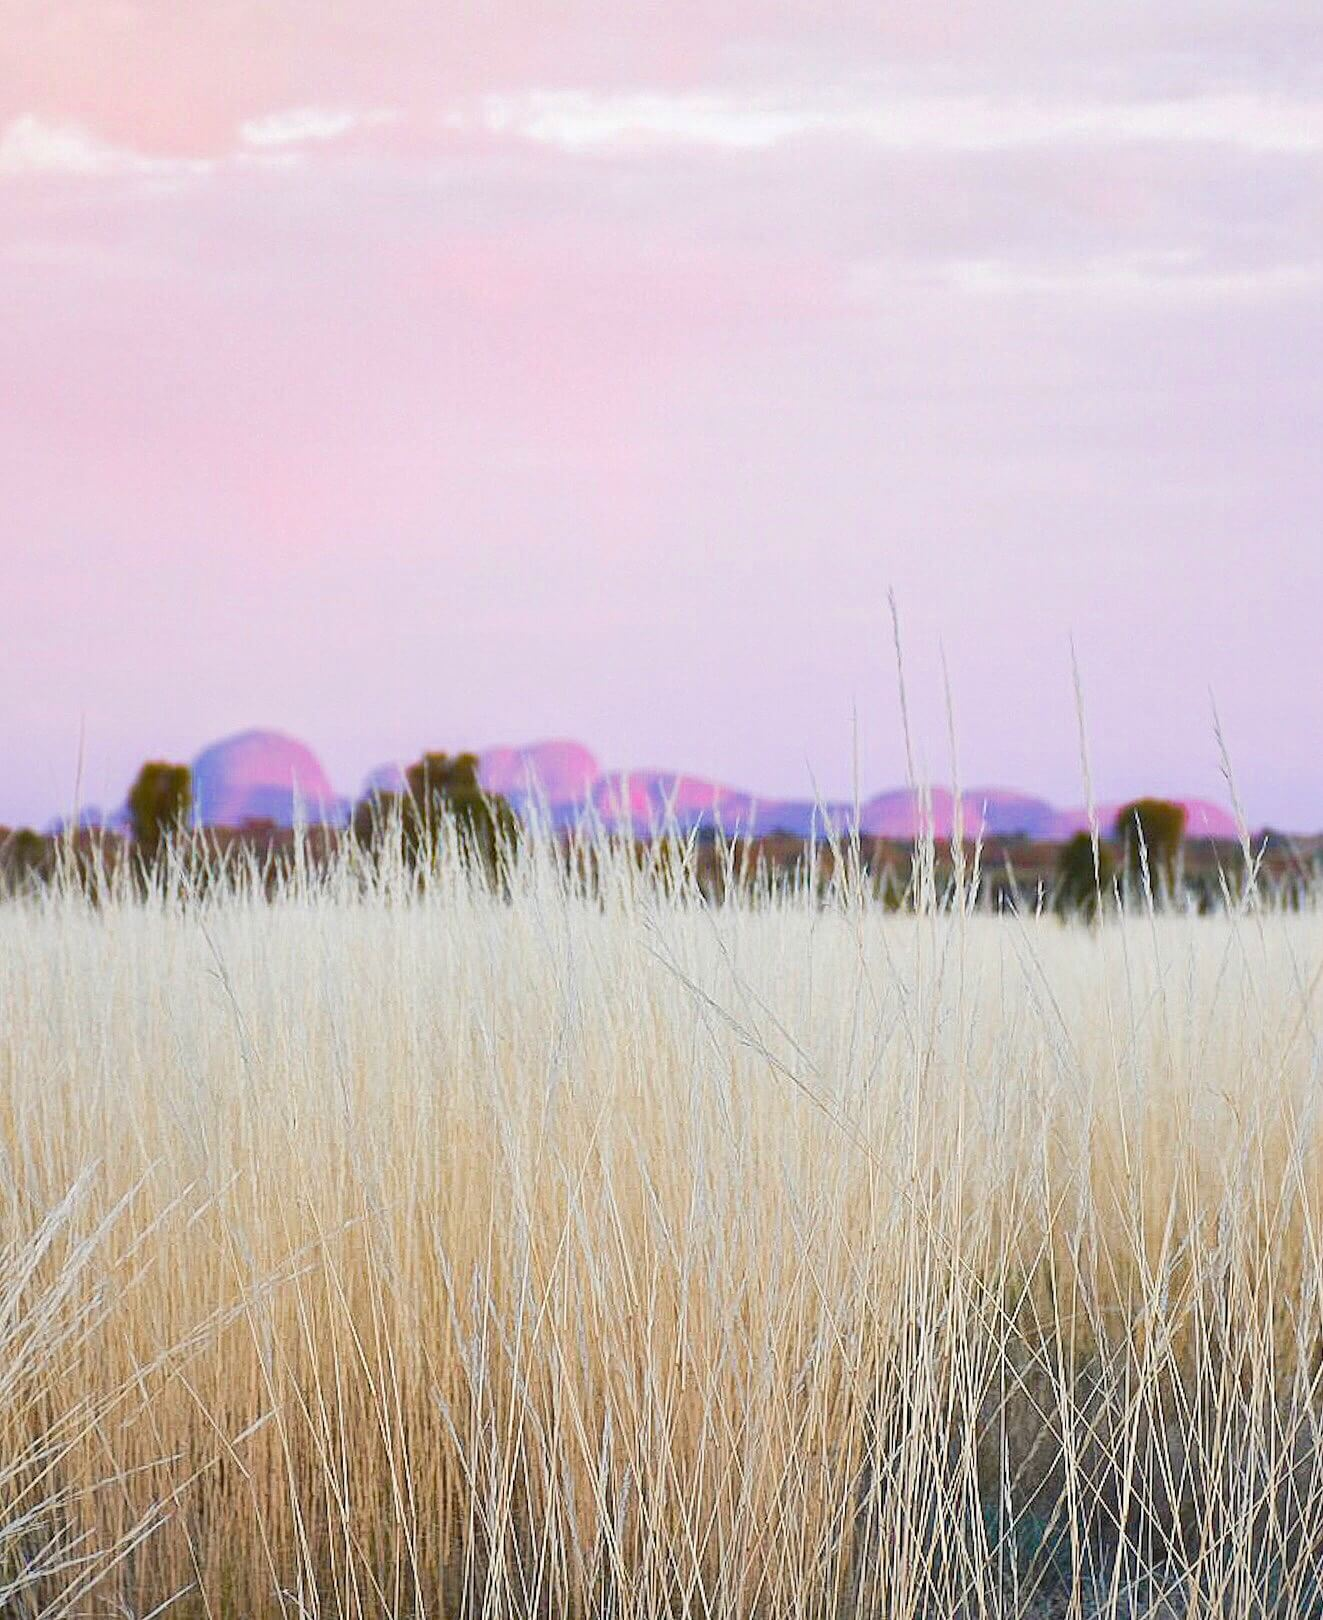 Reeds in the foreground with Kata Tjuta domes appearing in the distance below pink sky